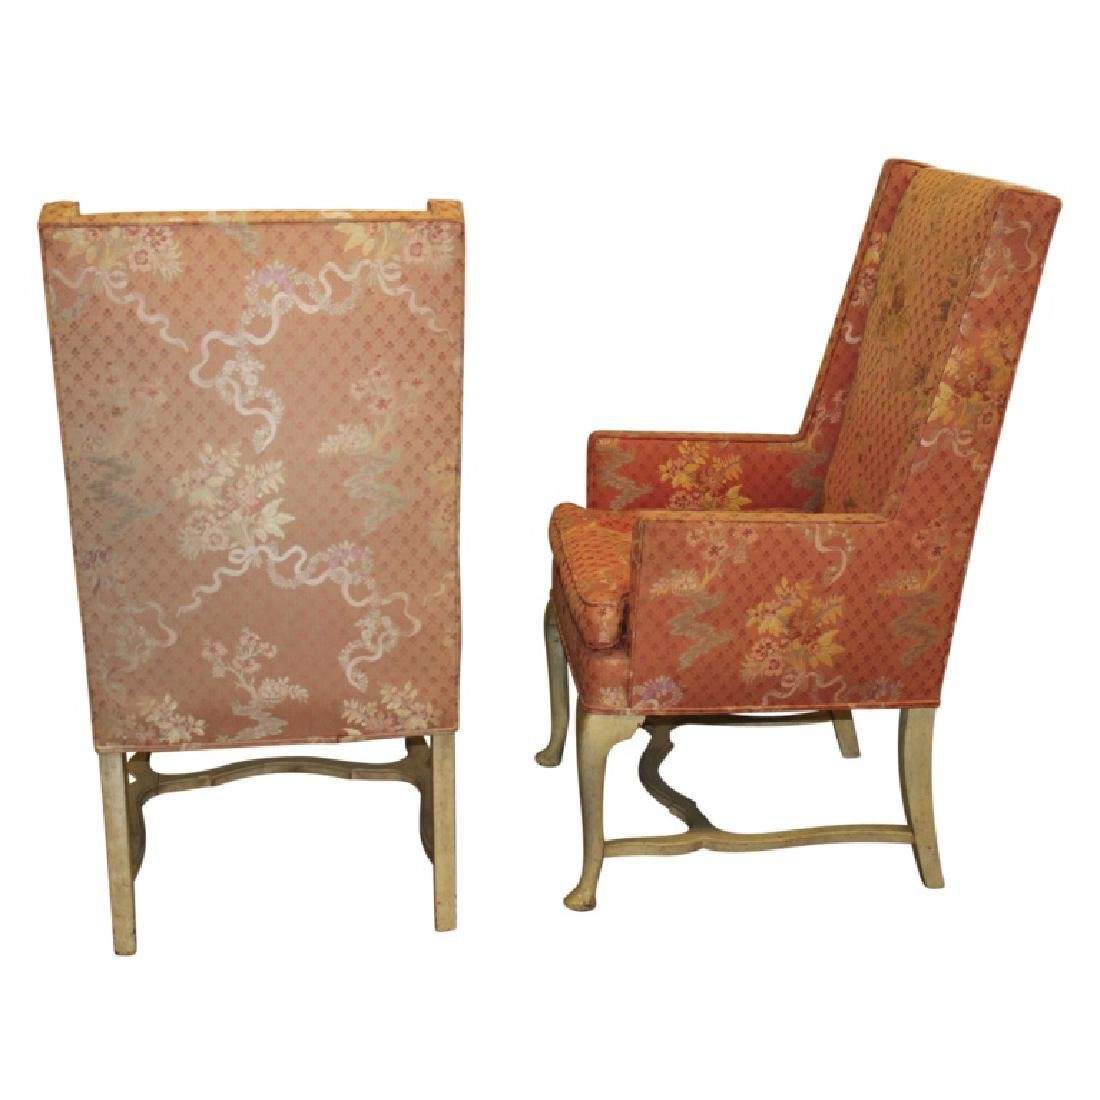 Pair of Upholstered French Fireside Chairs - 2